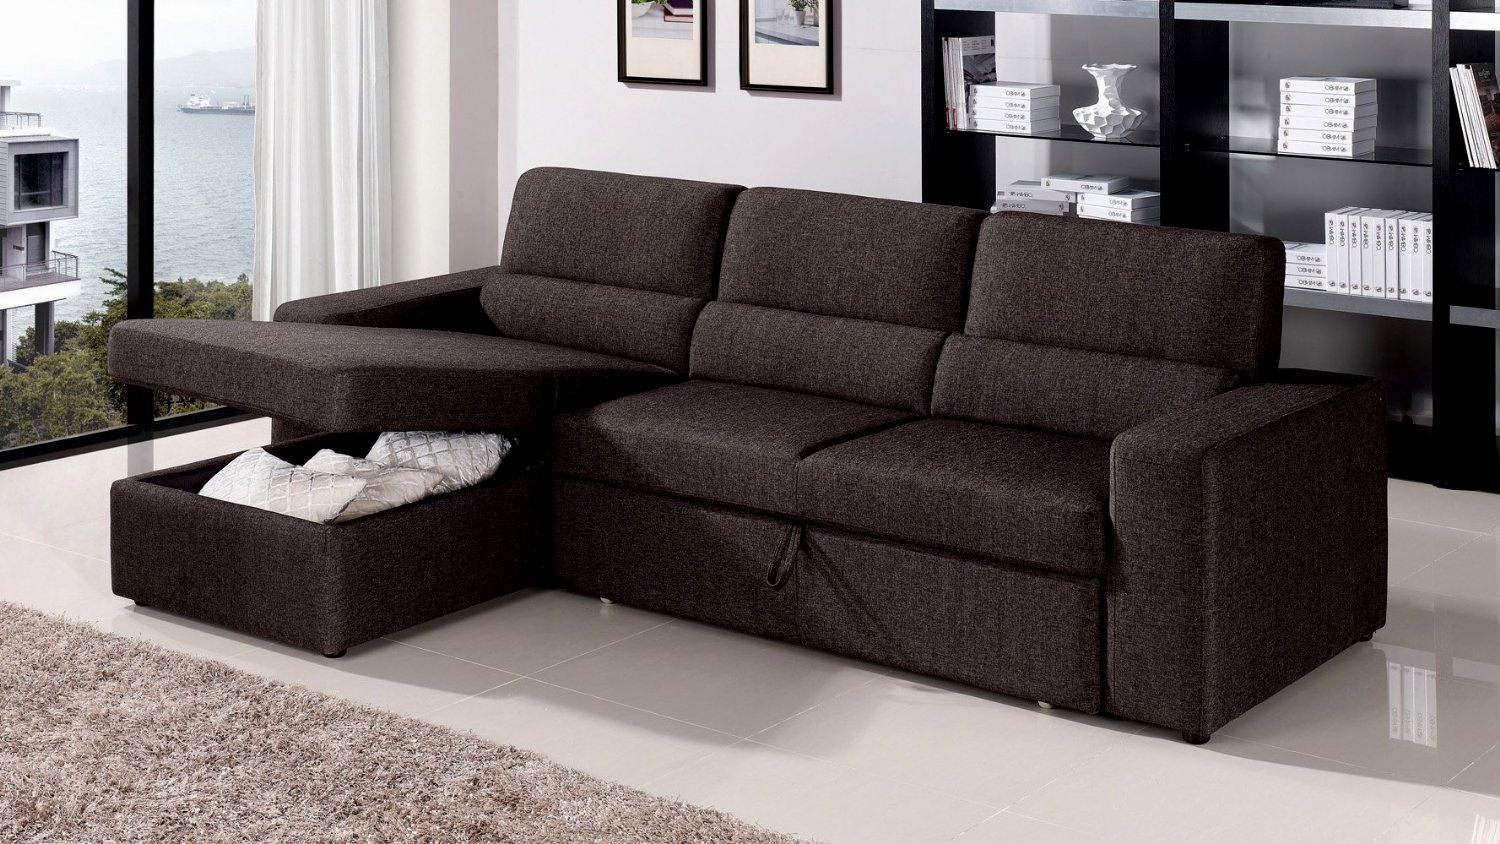 lovely small sectional sofa with chaise ideas-Lovely Small Sectional sofa with Chaise Gallery